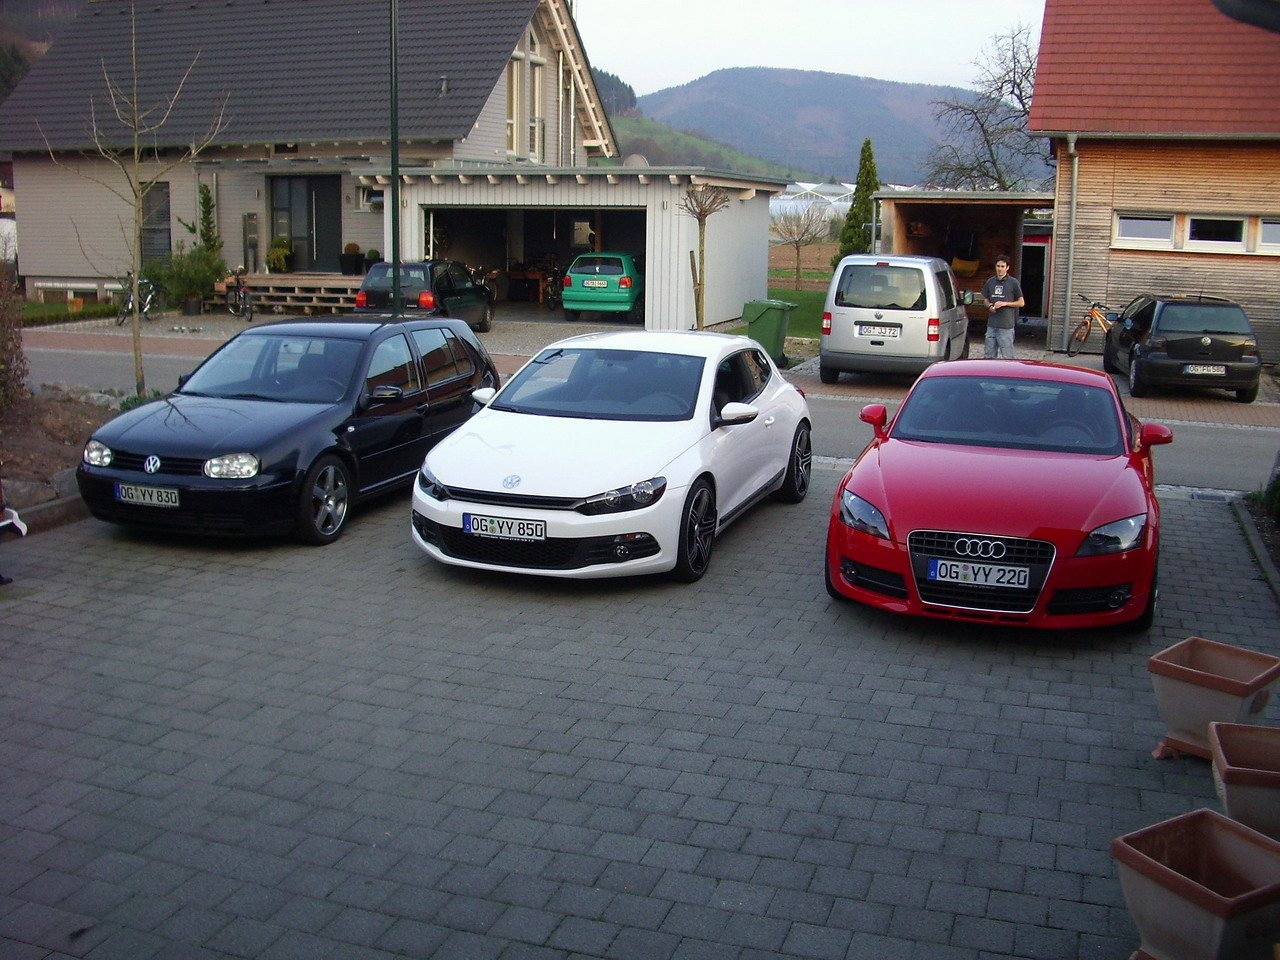 audi tt vw scirocco golf 03 pictures. Black Bedroom Furniture Sets. Home Design Ideas